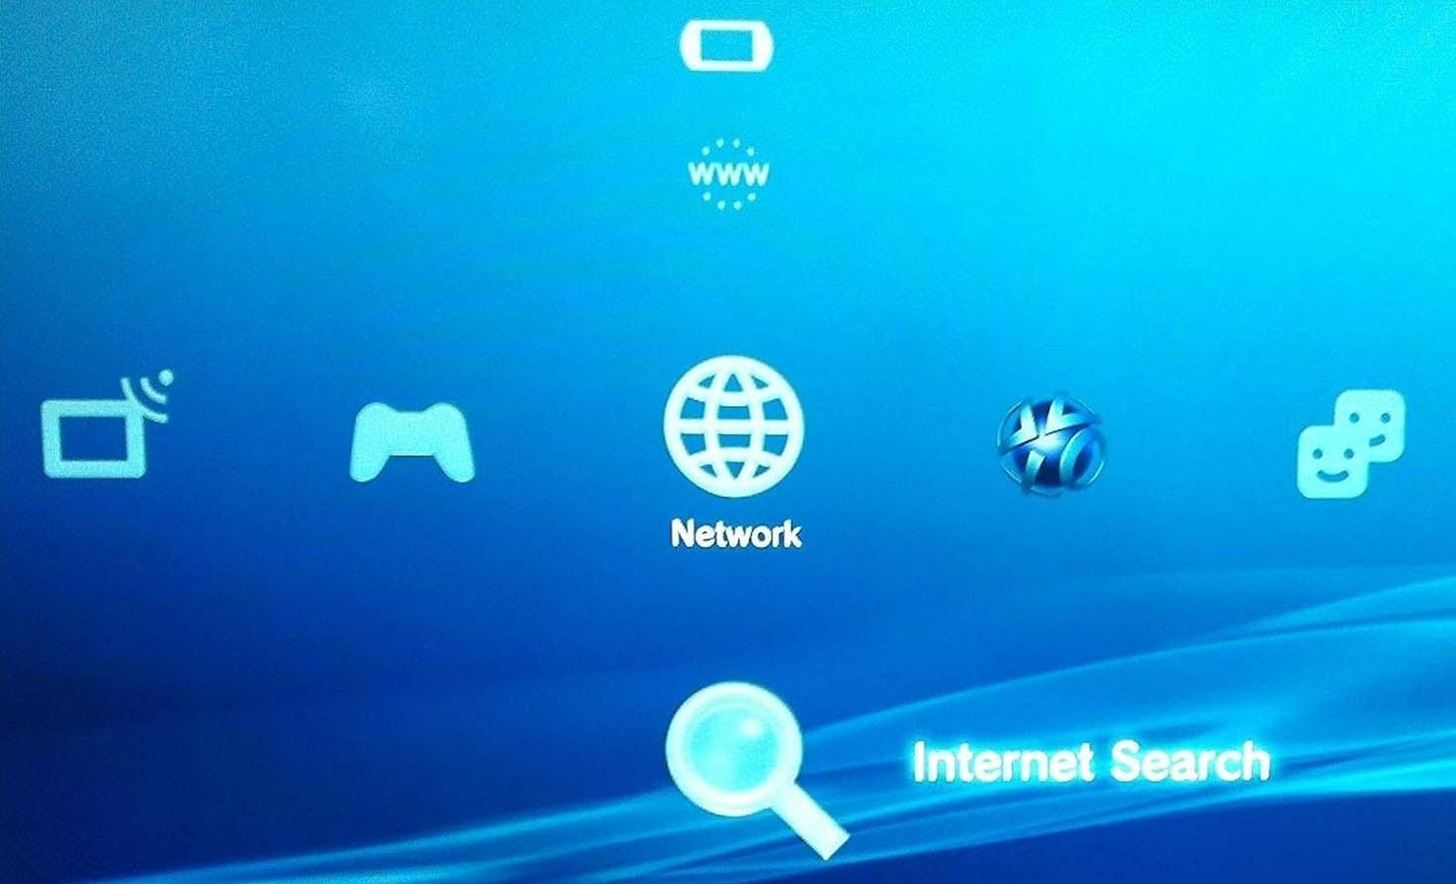 How To Download Wallpaper For Ps3